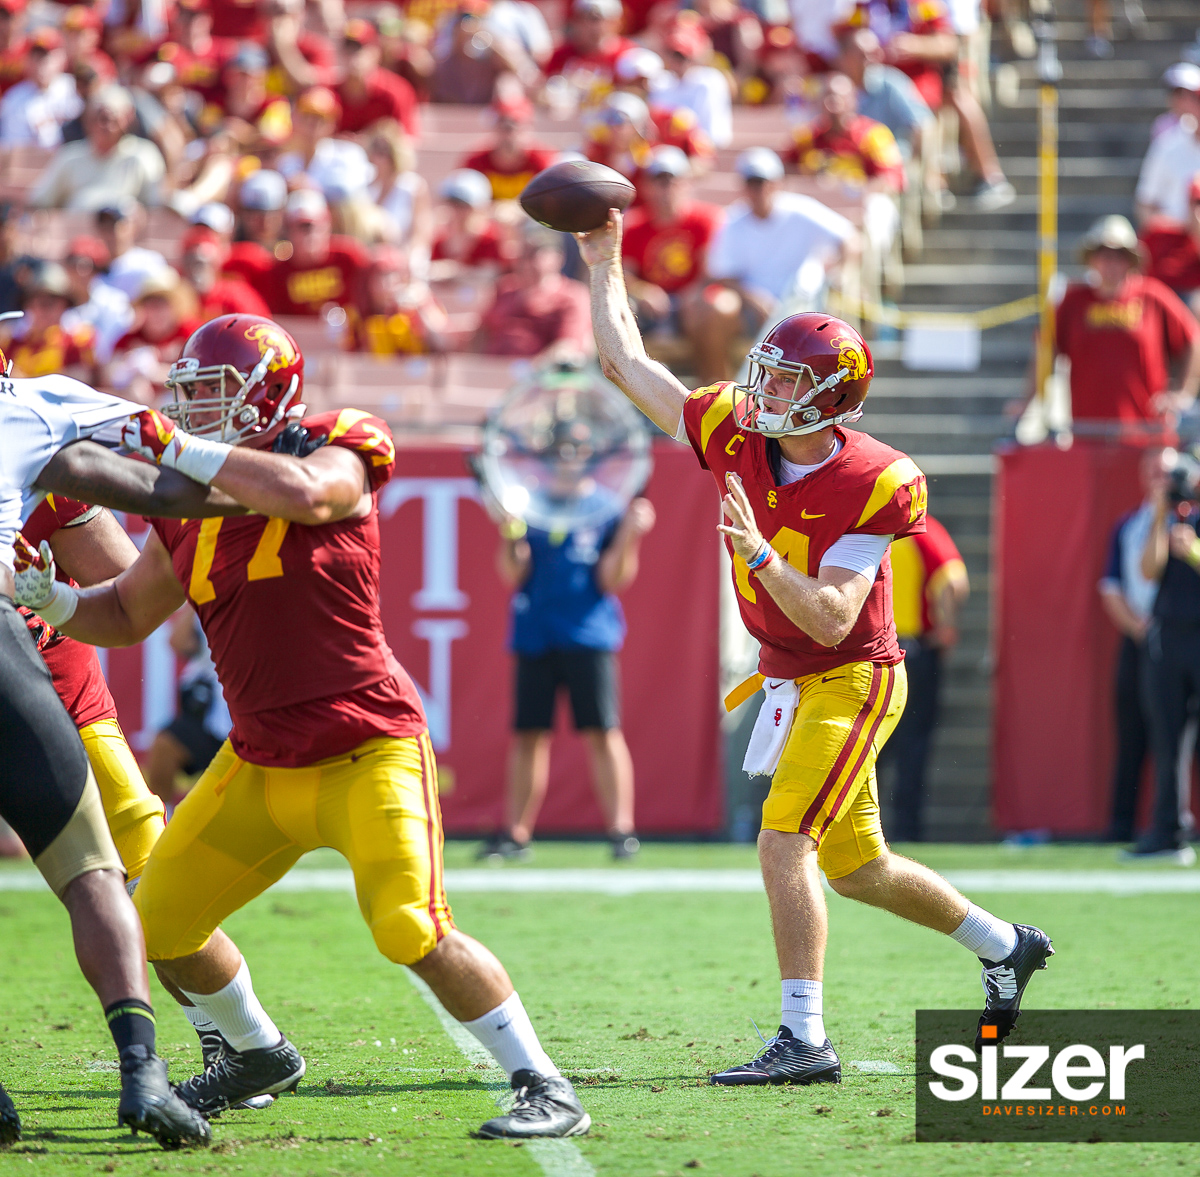 Sam Darnold launches a pass.